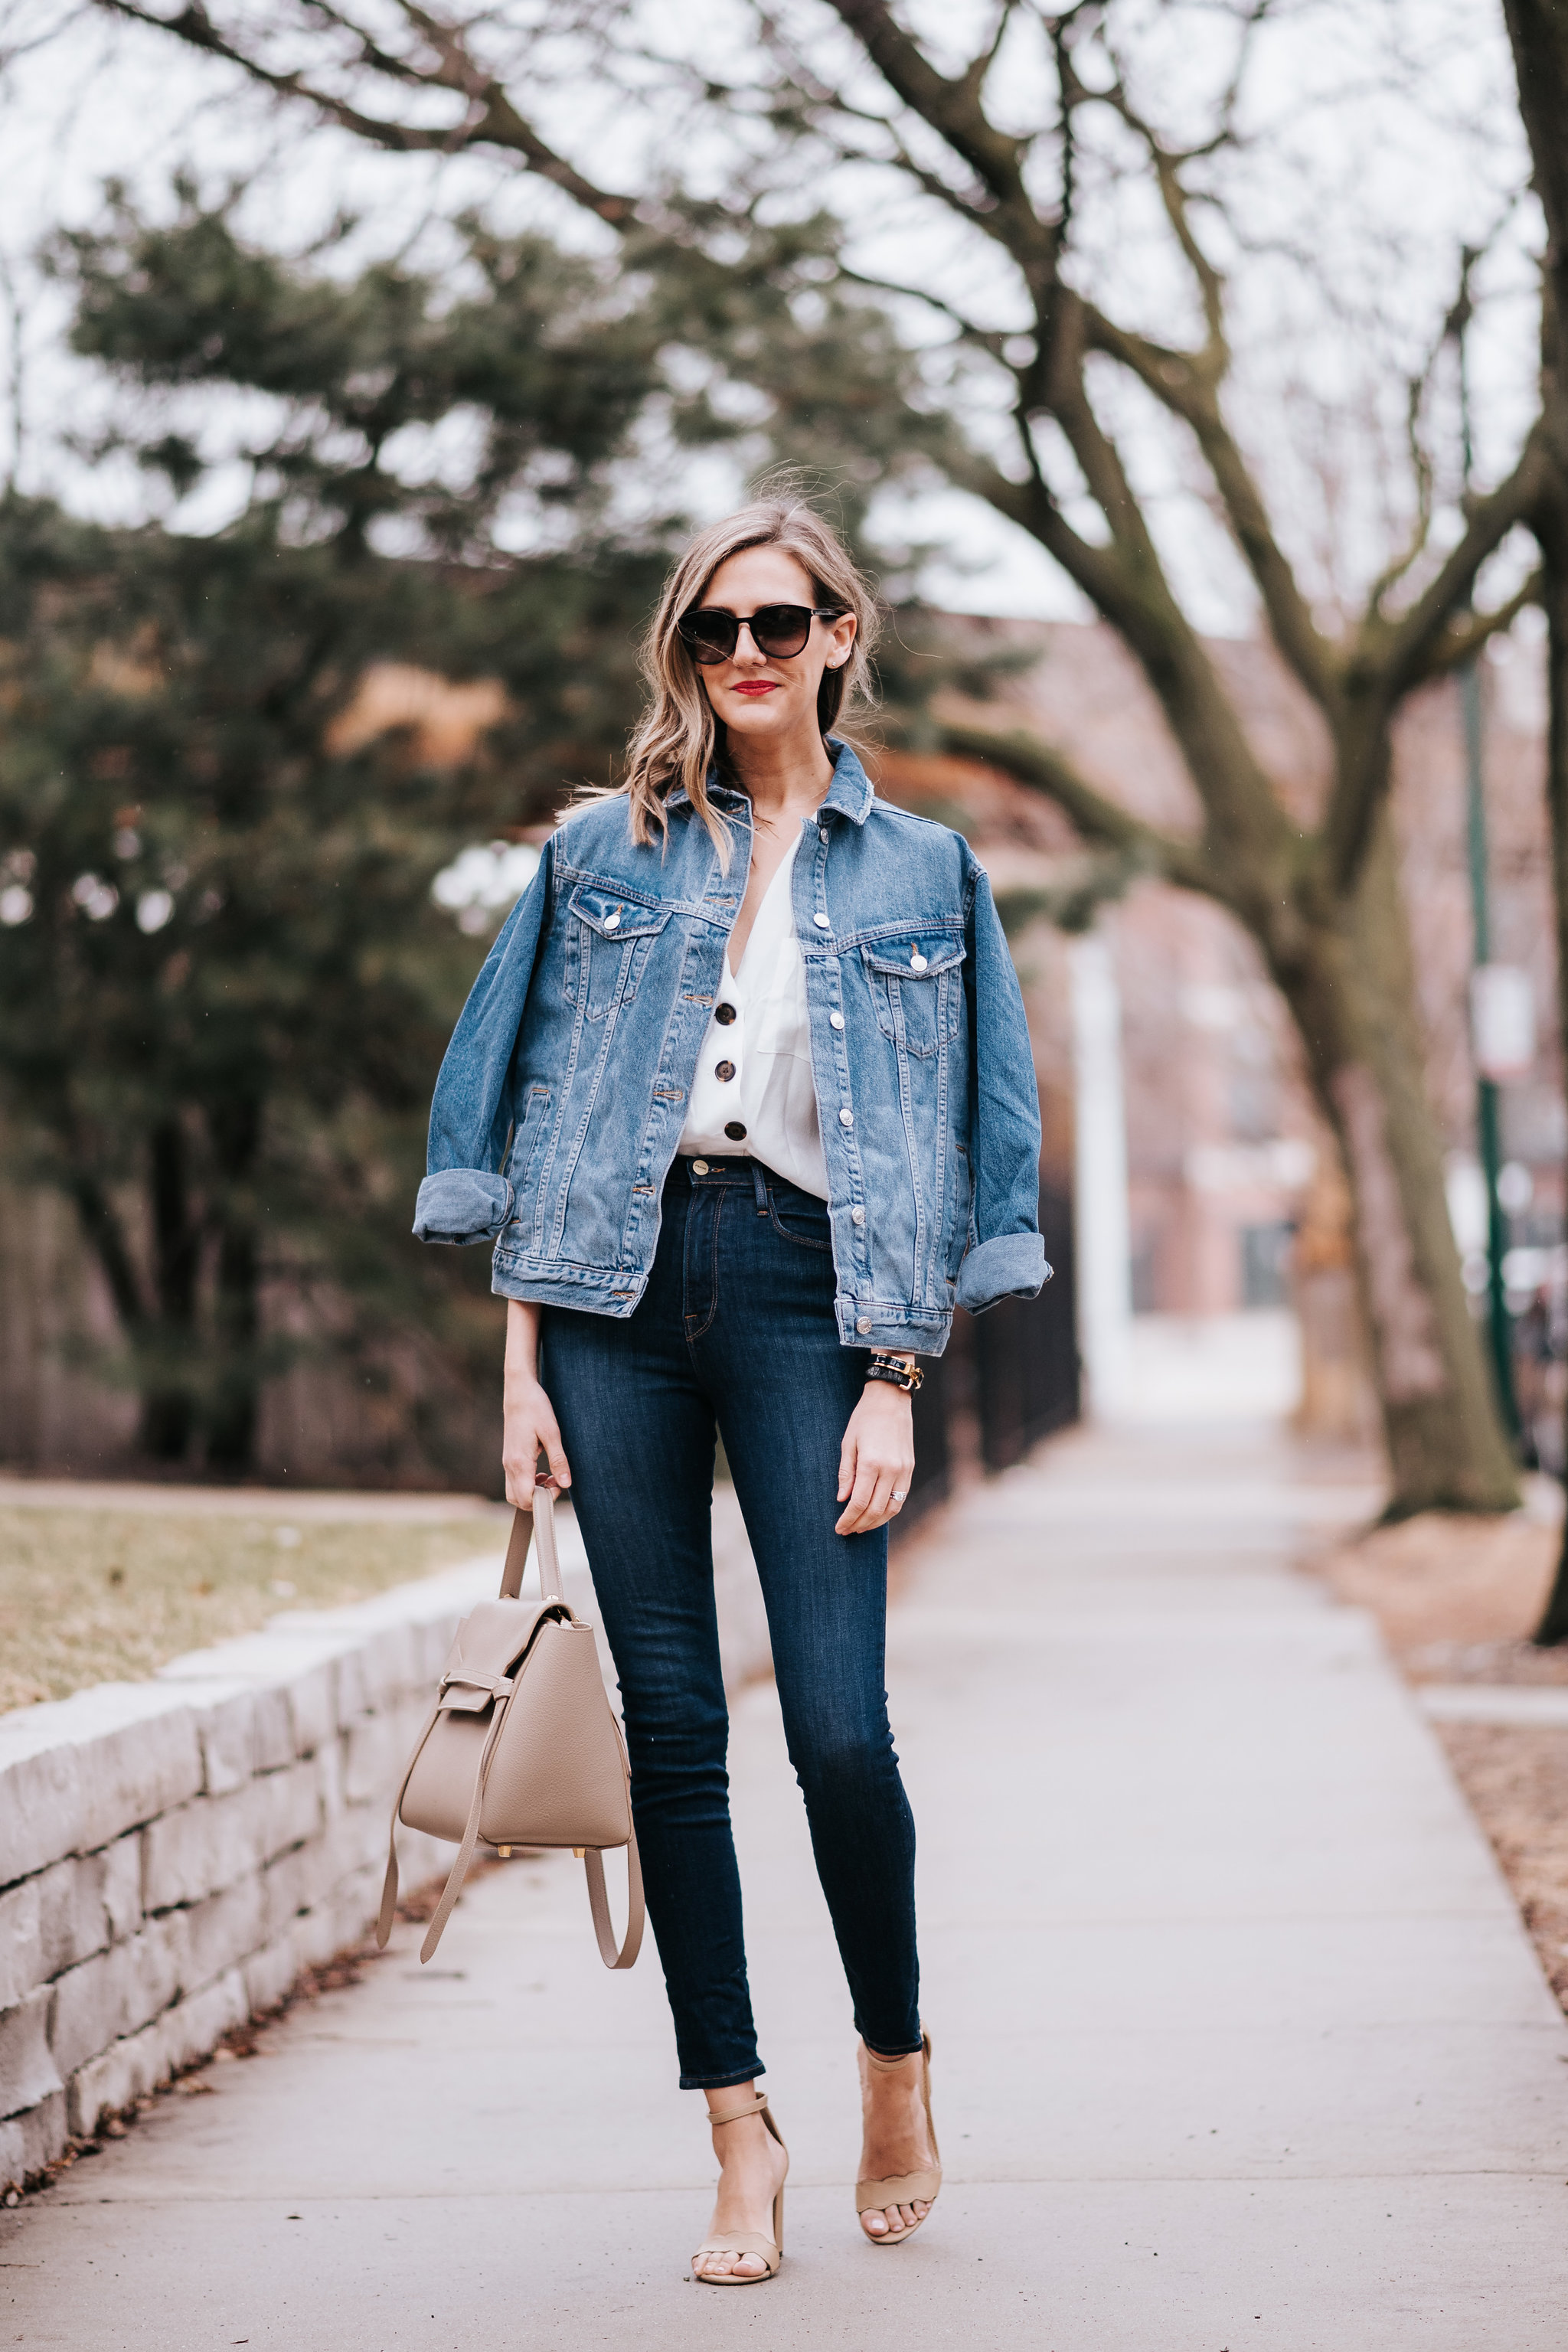 how to wear oversized jean jacket denim topshop for spring